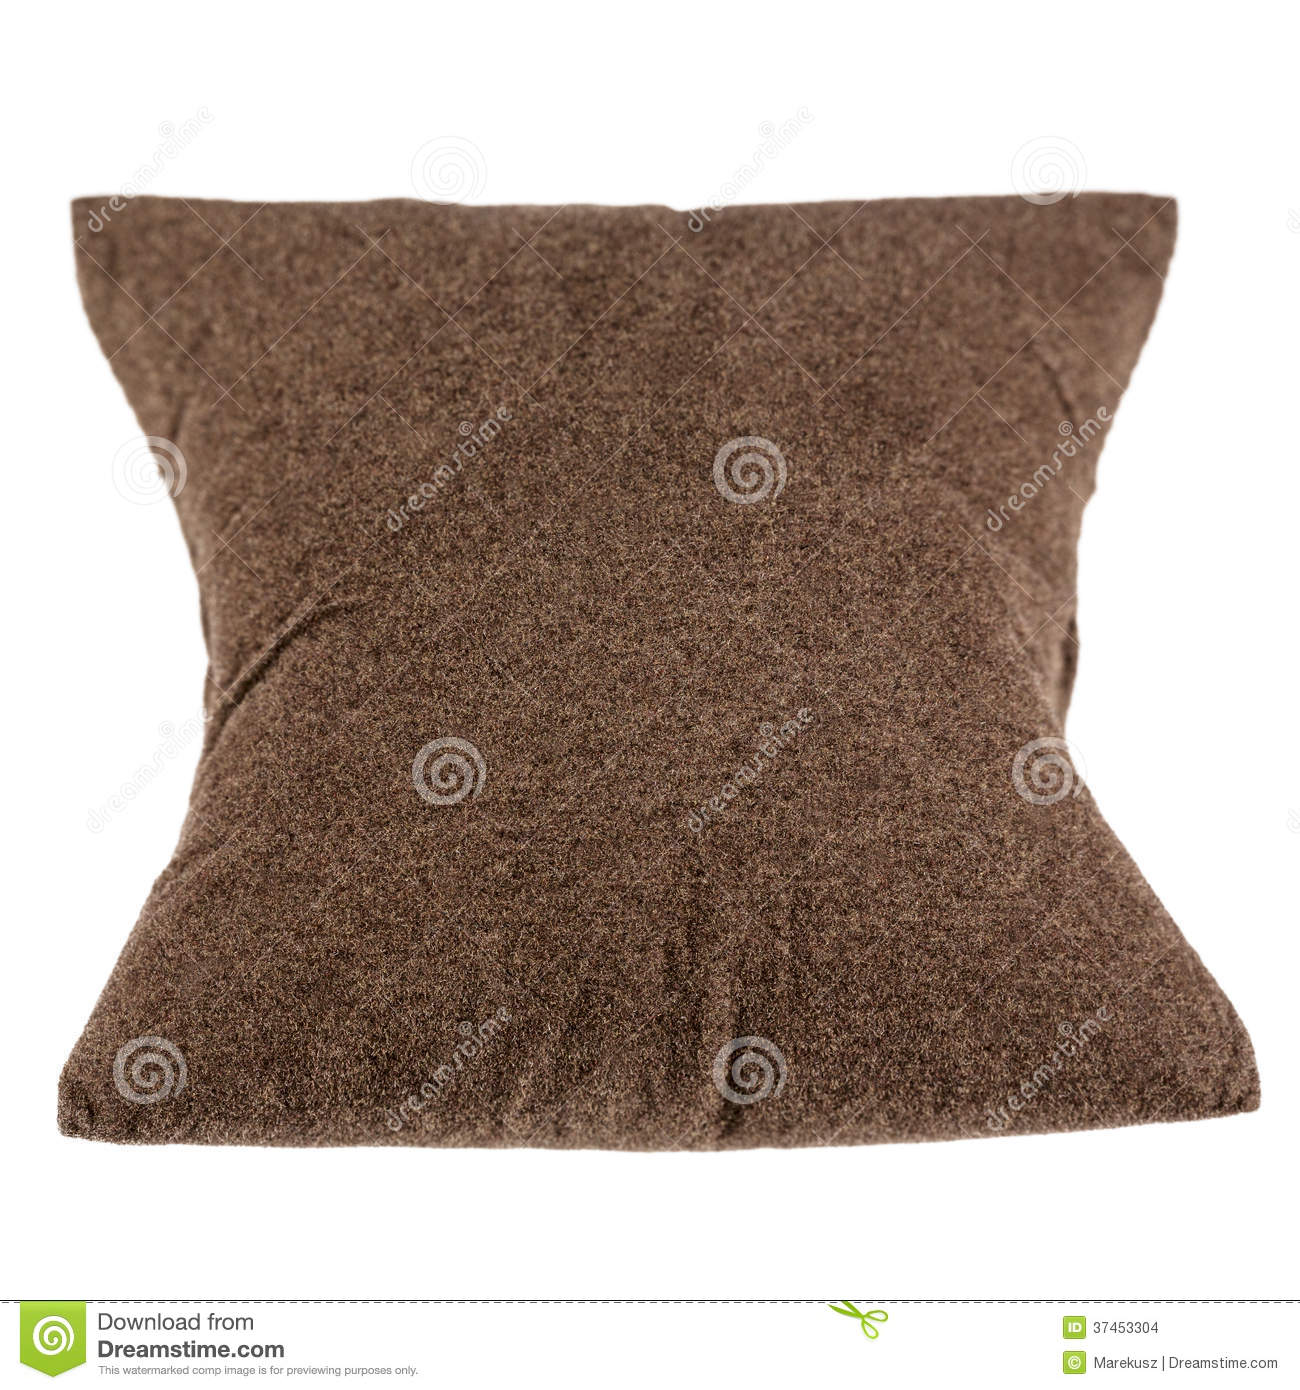 Soft Pillow Made Of Dark Soft Fabrics Shown On A White Background